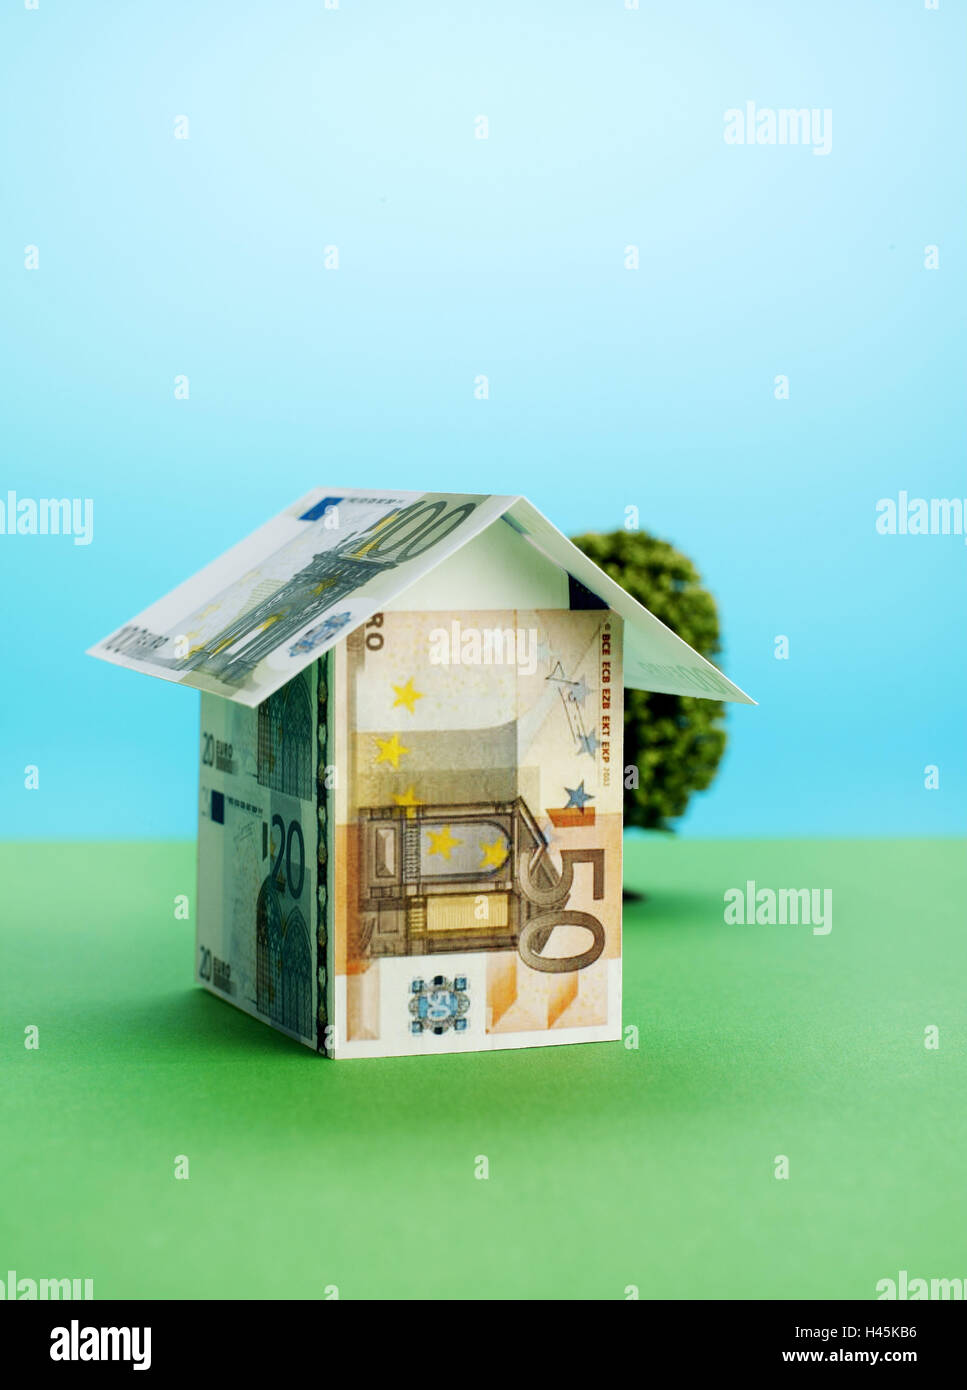 Banknotes House Form Icon Building Of A House Small House